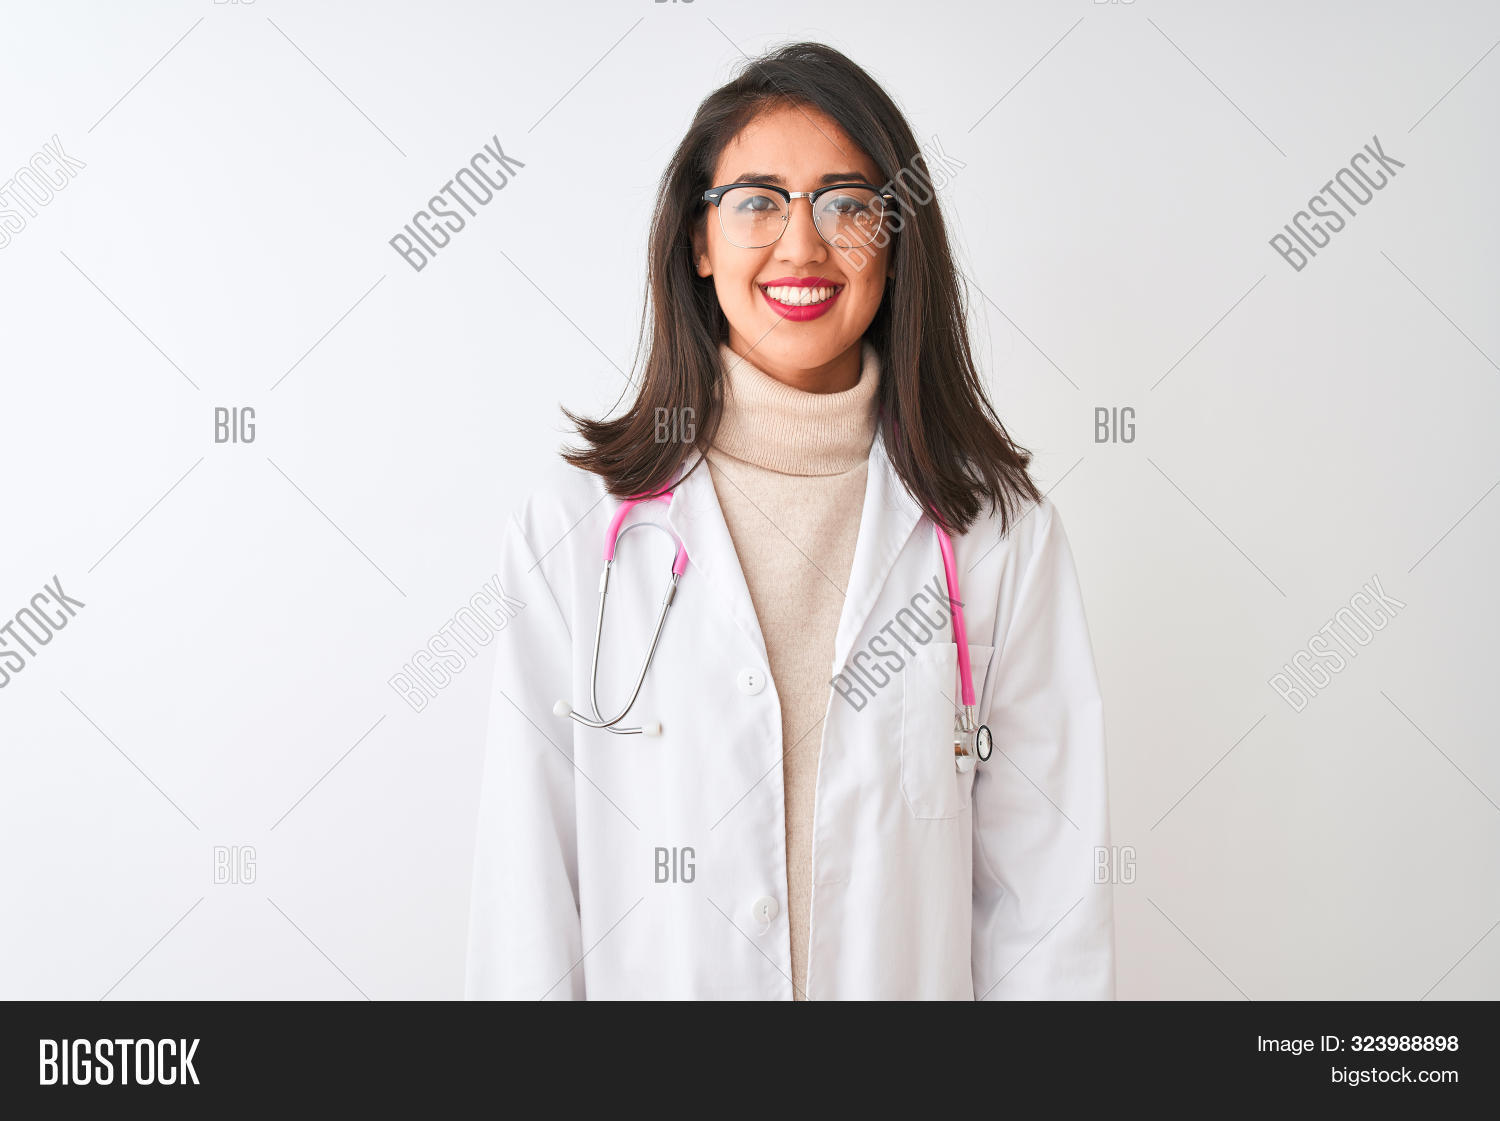 adult,asian,background,beautiful,business,cheerful,chinese,clinic,coat,confidence,confident,cool,doctor,excited,face,fashion,front,happiness,happy,health,health care,hospital,isolated,joy,laugh,lifestyle,looking,lucky,medical,mouth,natural,perfect,person,pink,portrait,positive,professional,proud,smile,stethoscope,style,success,teeth,trust,white,woman,young